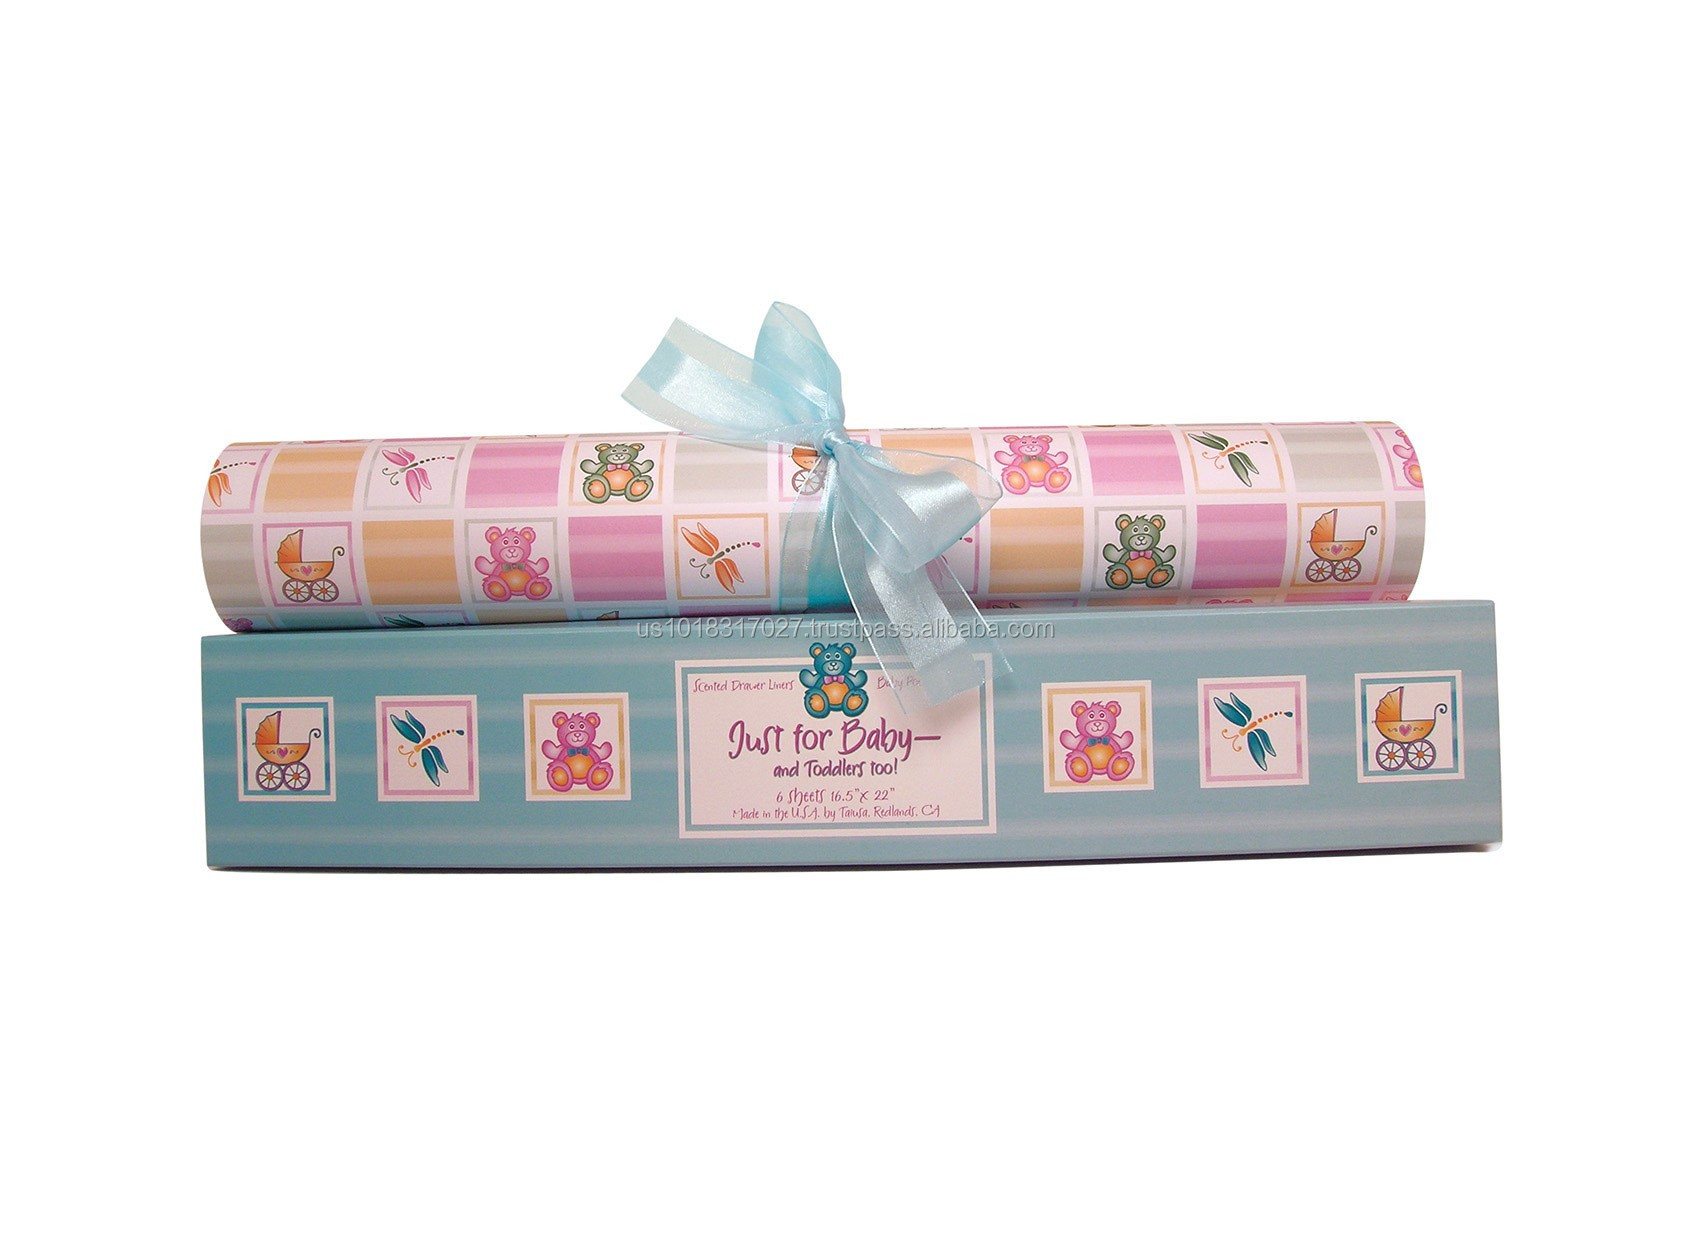 Just for Baby New - Blue/Aqua Scented Drawer Liner From Scentennials